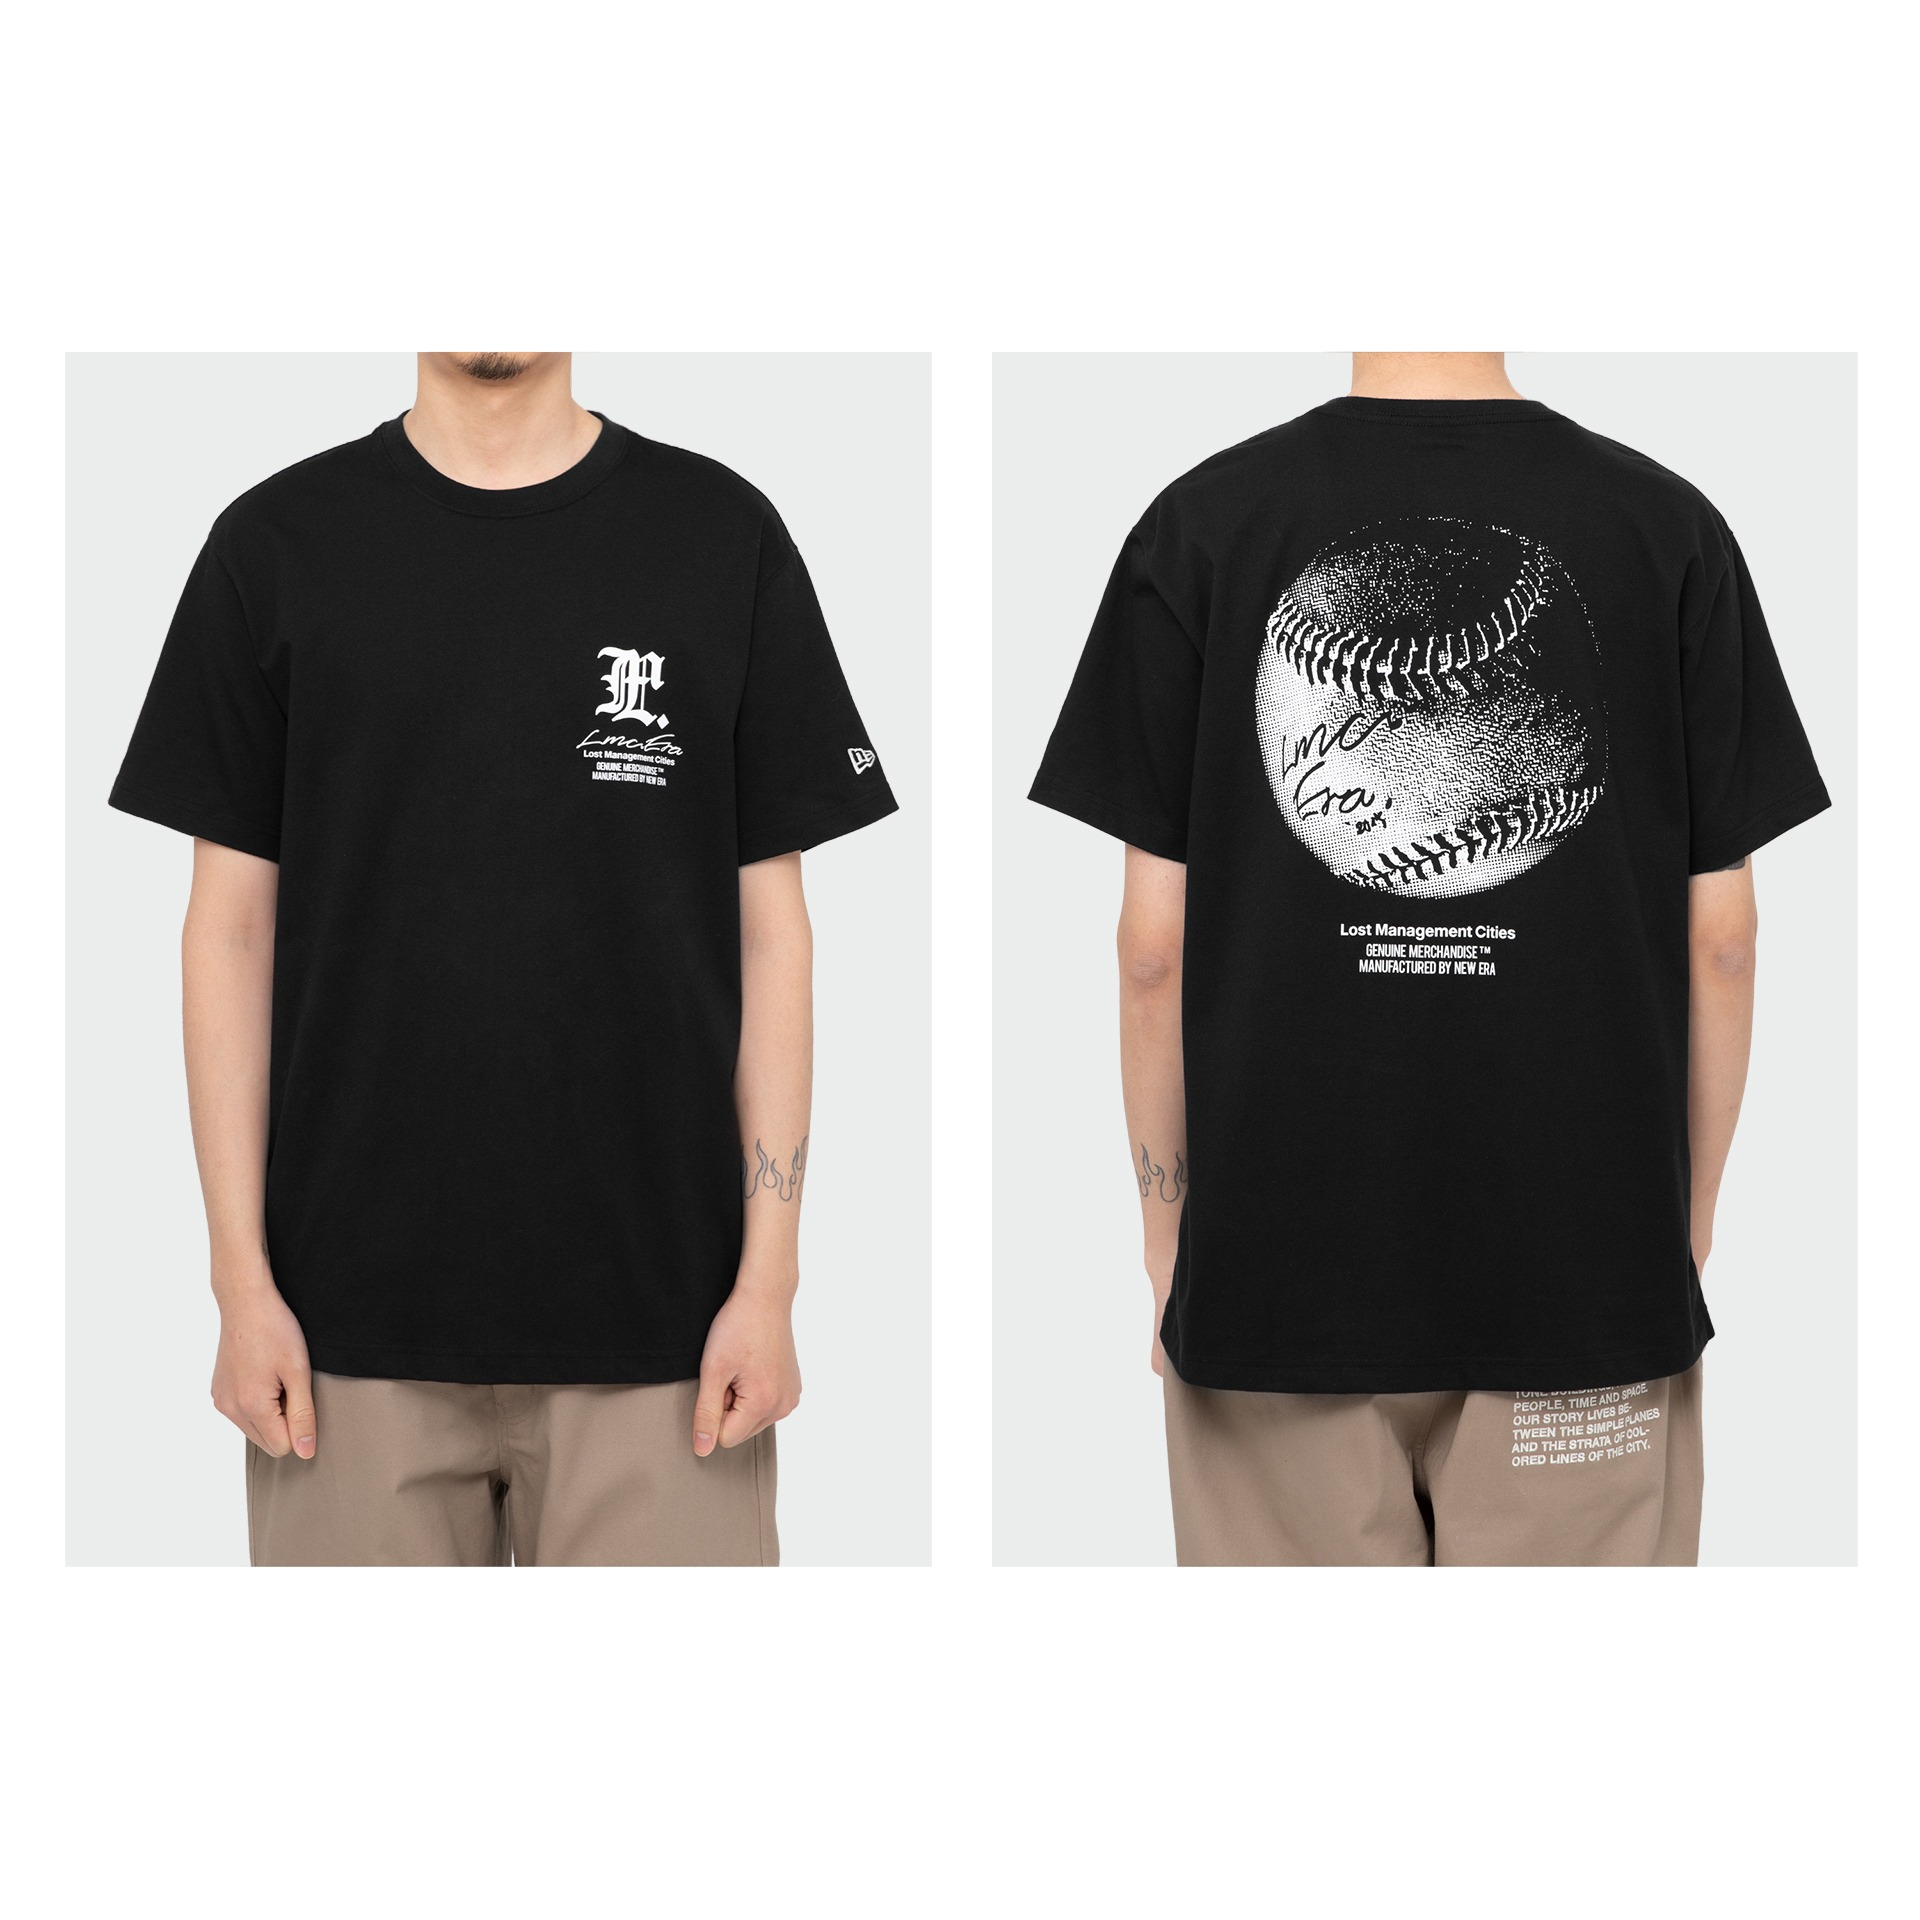 LMC X NEW ERA SIGNED BALL TEE black